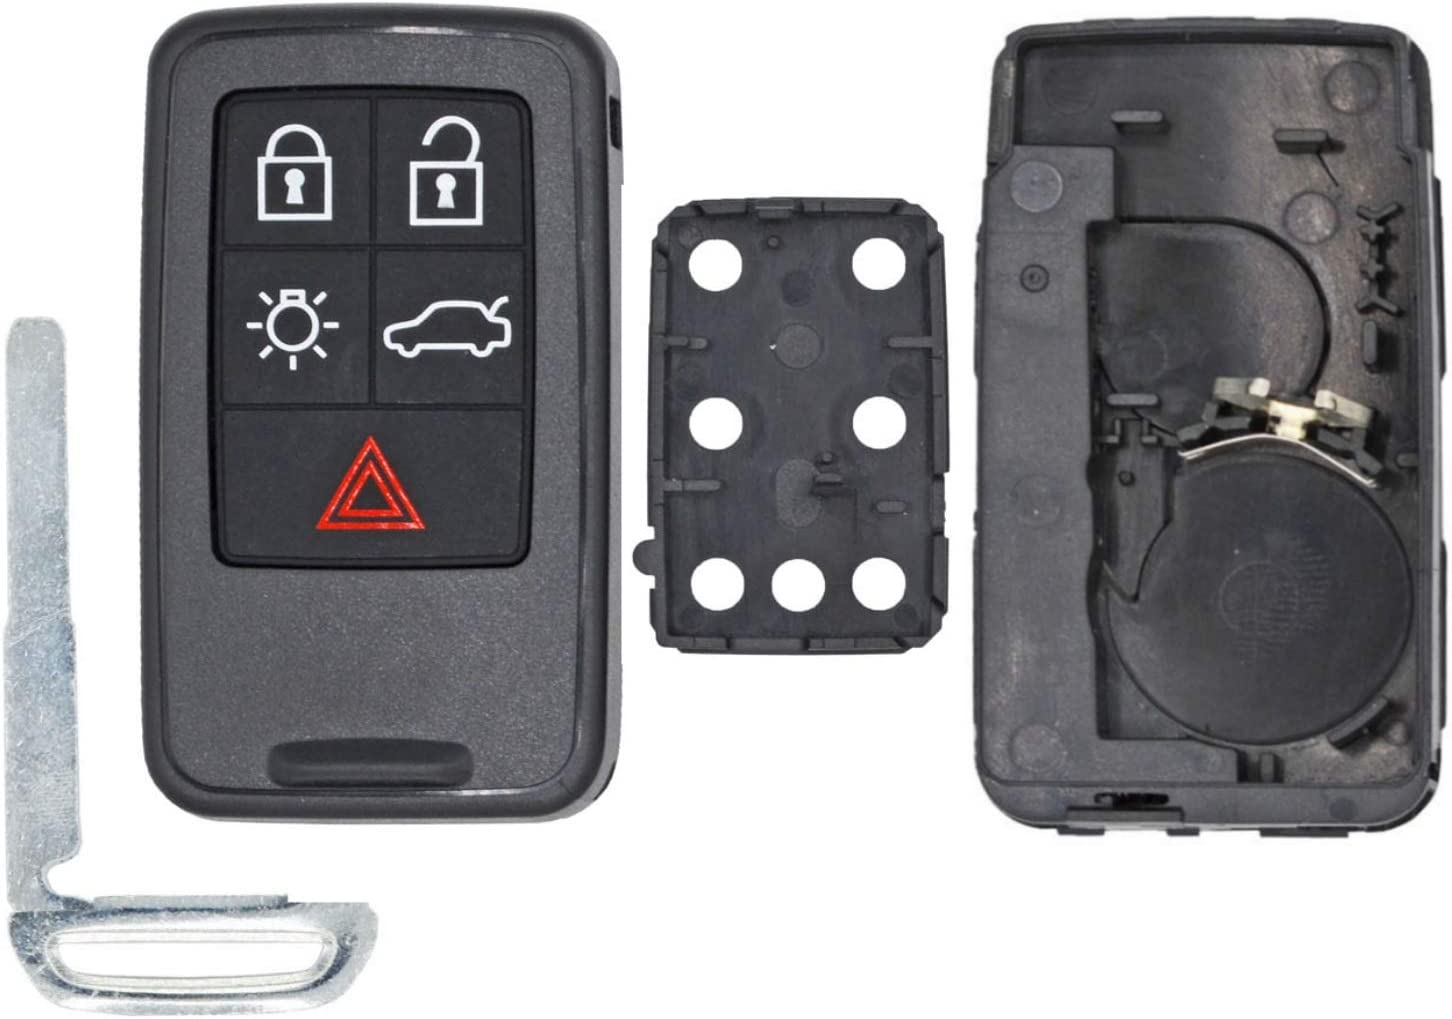 Pack of 2 KeylessOption Keyless Entry Remote Smart Key Fob Case Shell Button Pad Outer Cover For Volvo KR55WK49264